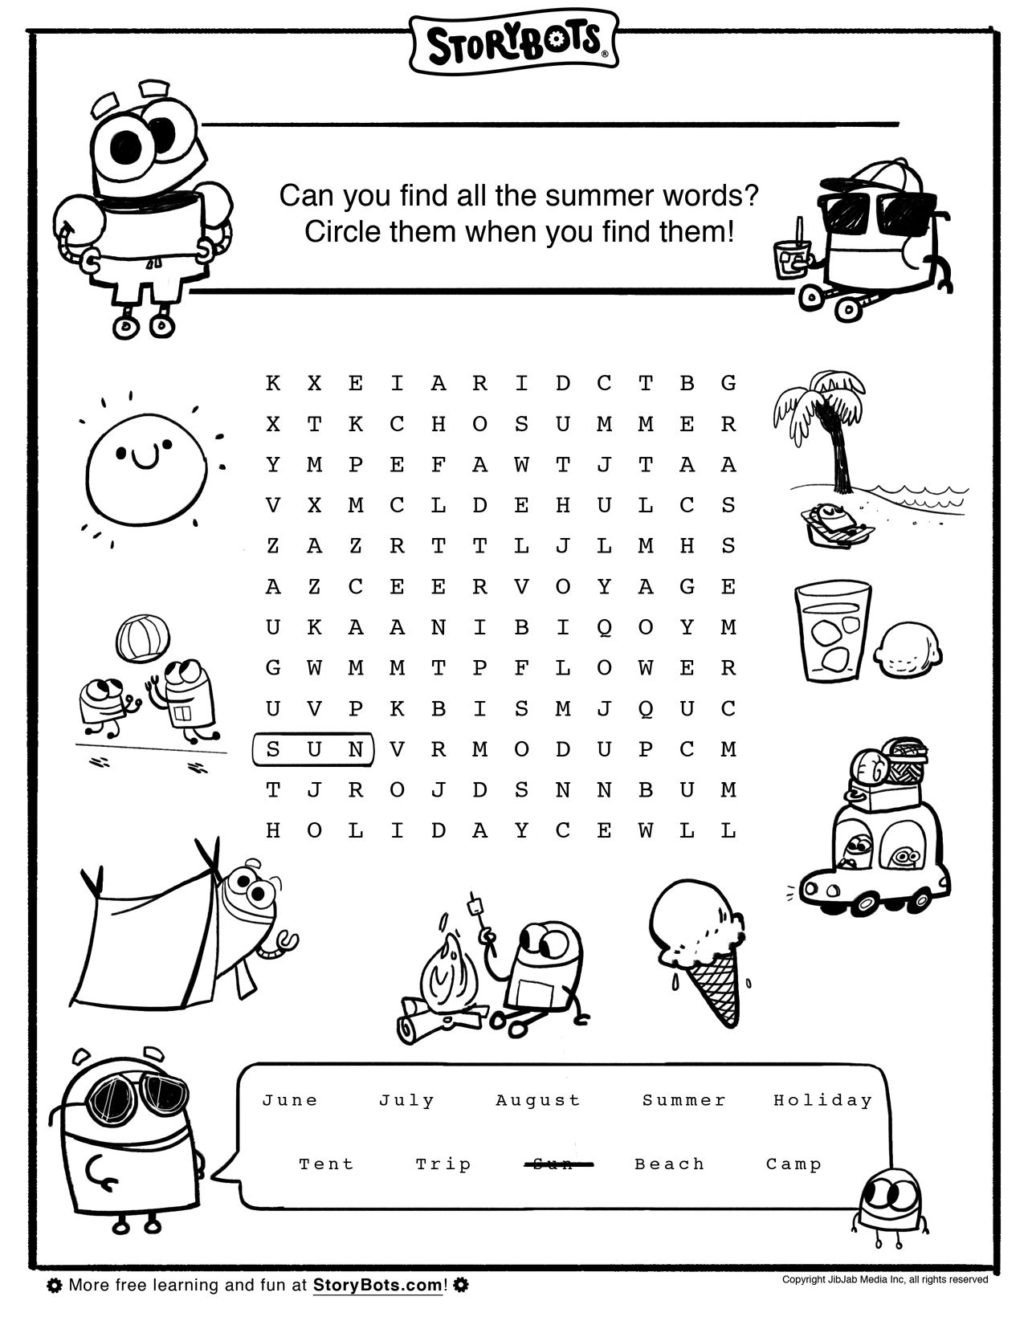 worksheet free printable kids activity sheets fire safety for worksheets pentecost and children christian 1024x1325